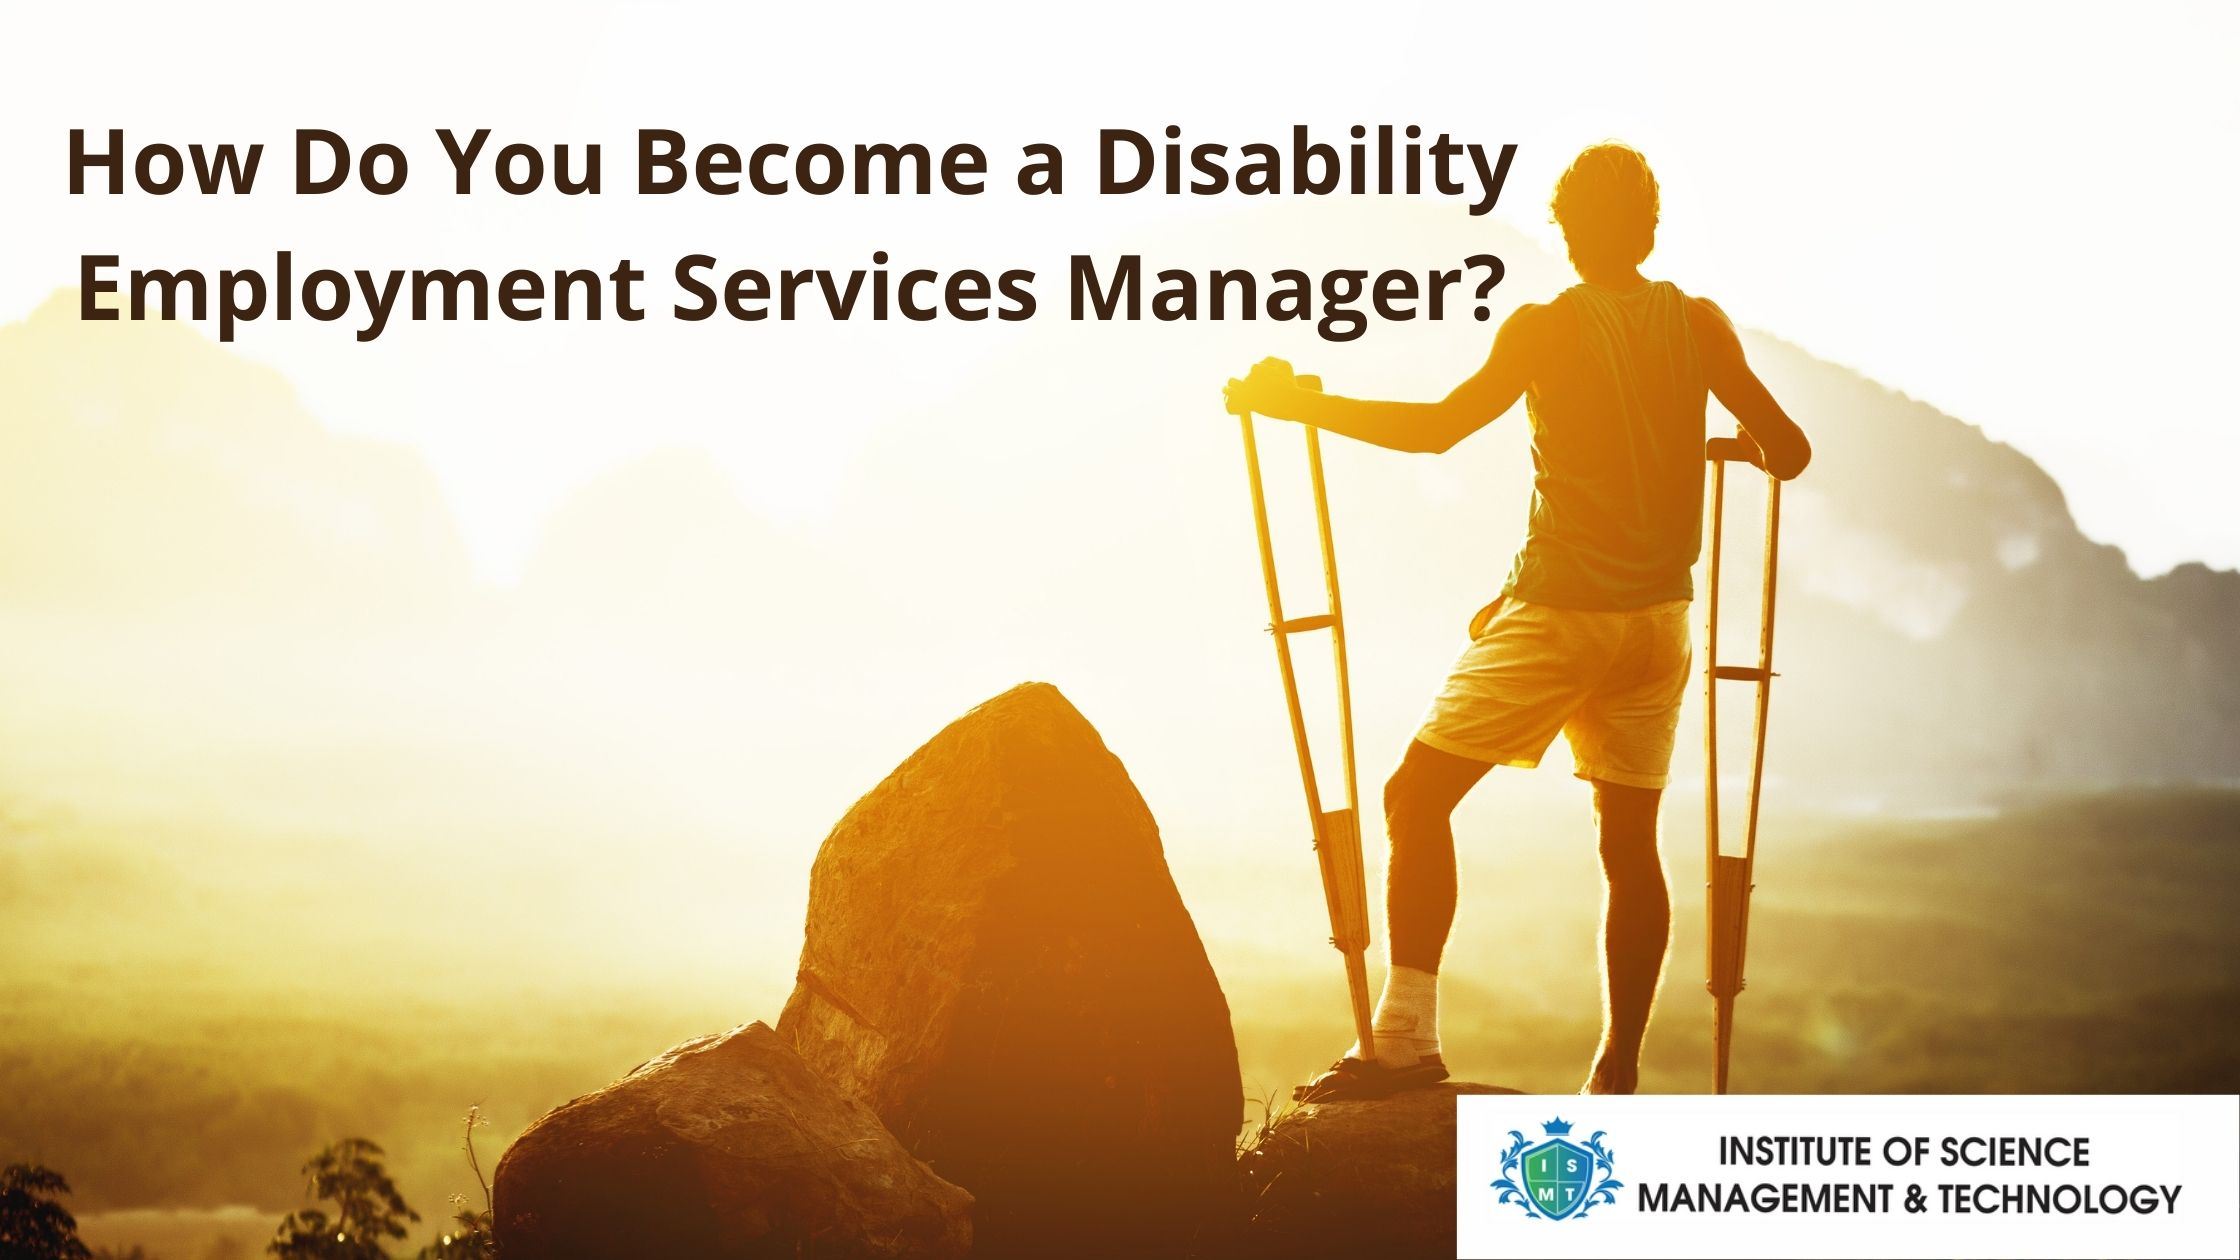 How Do You Become a Disability Employment Services Manager_